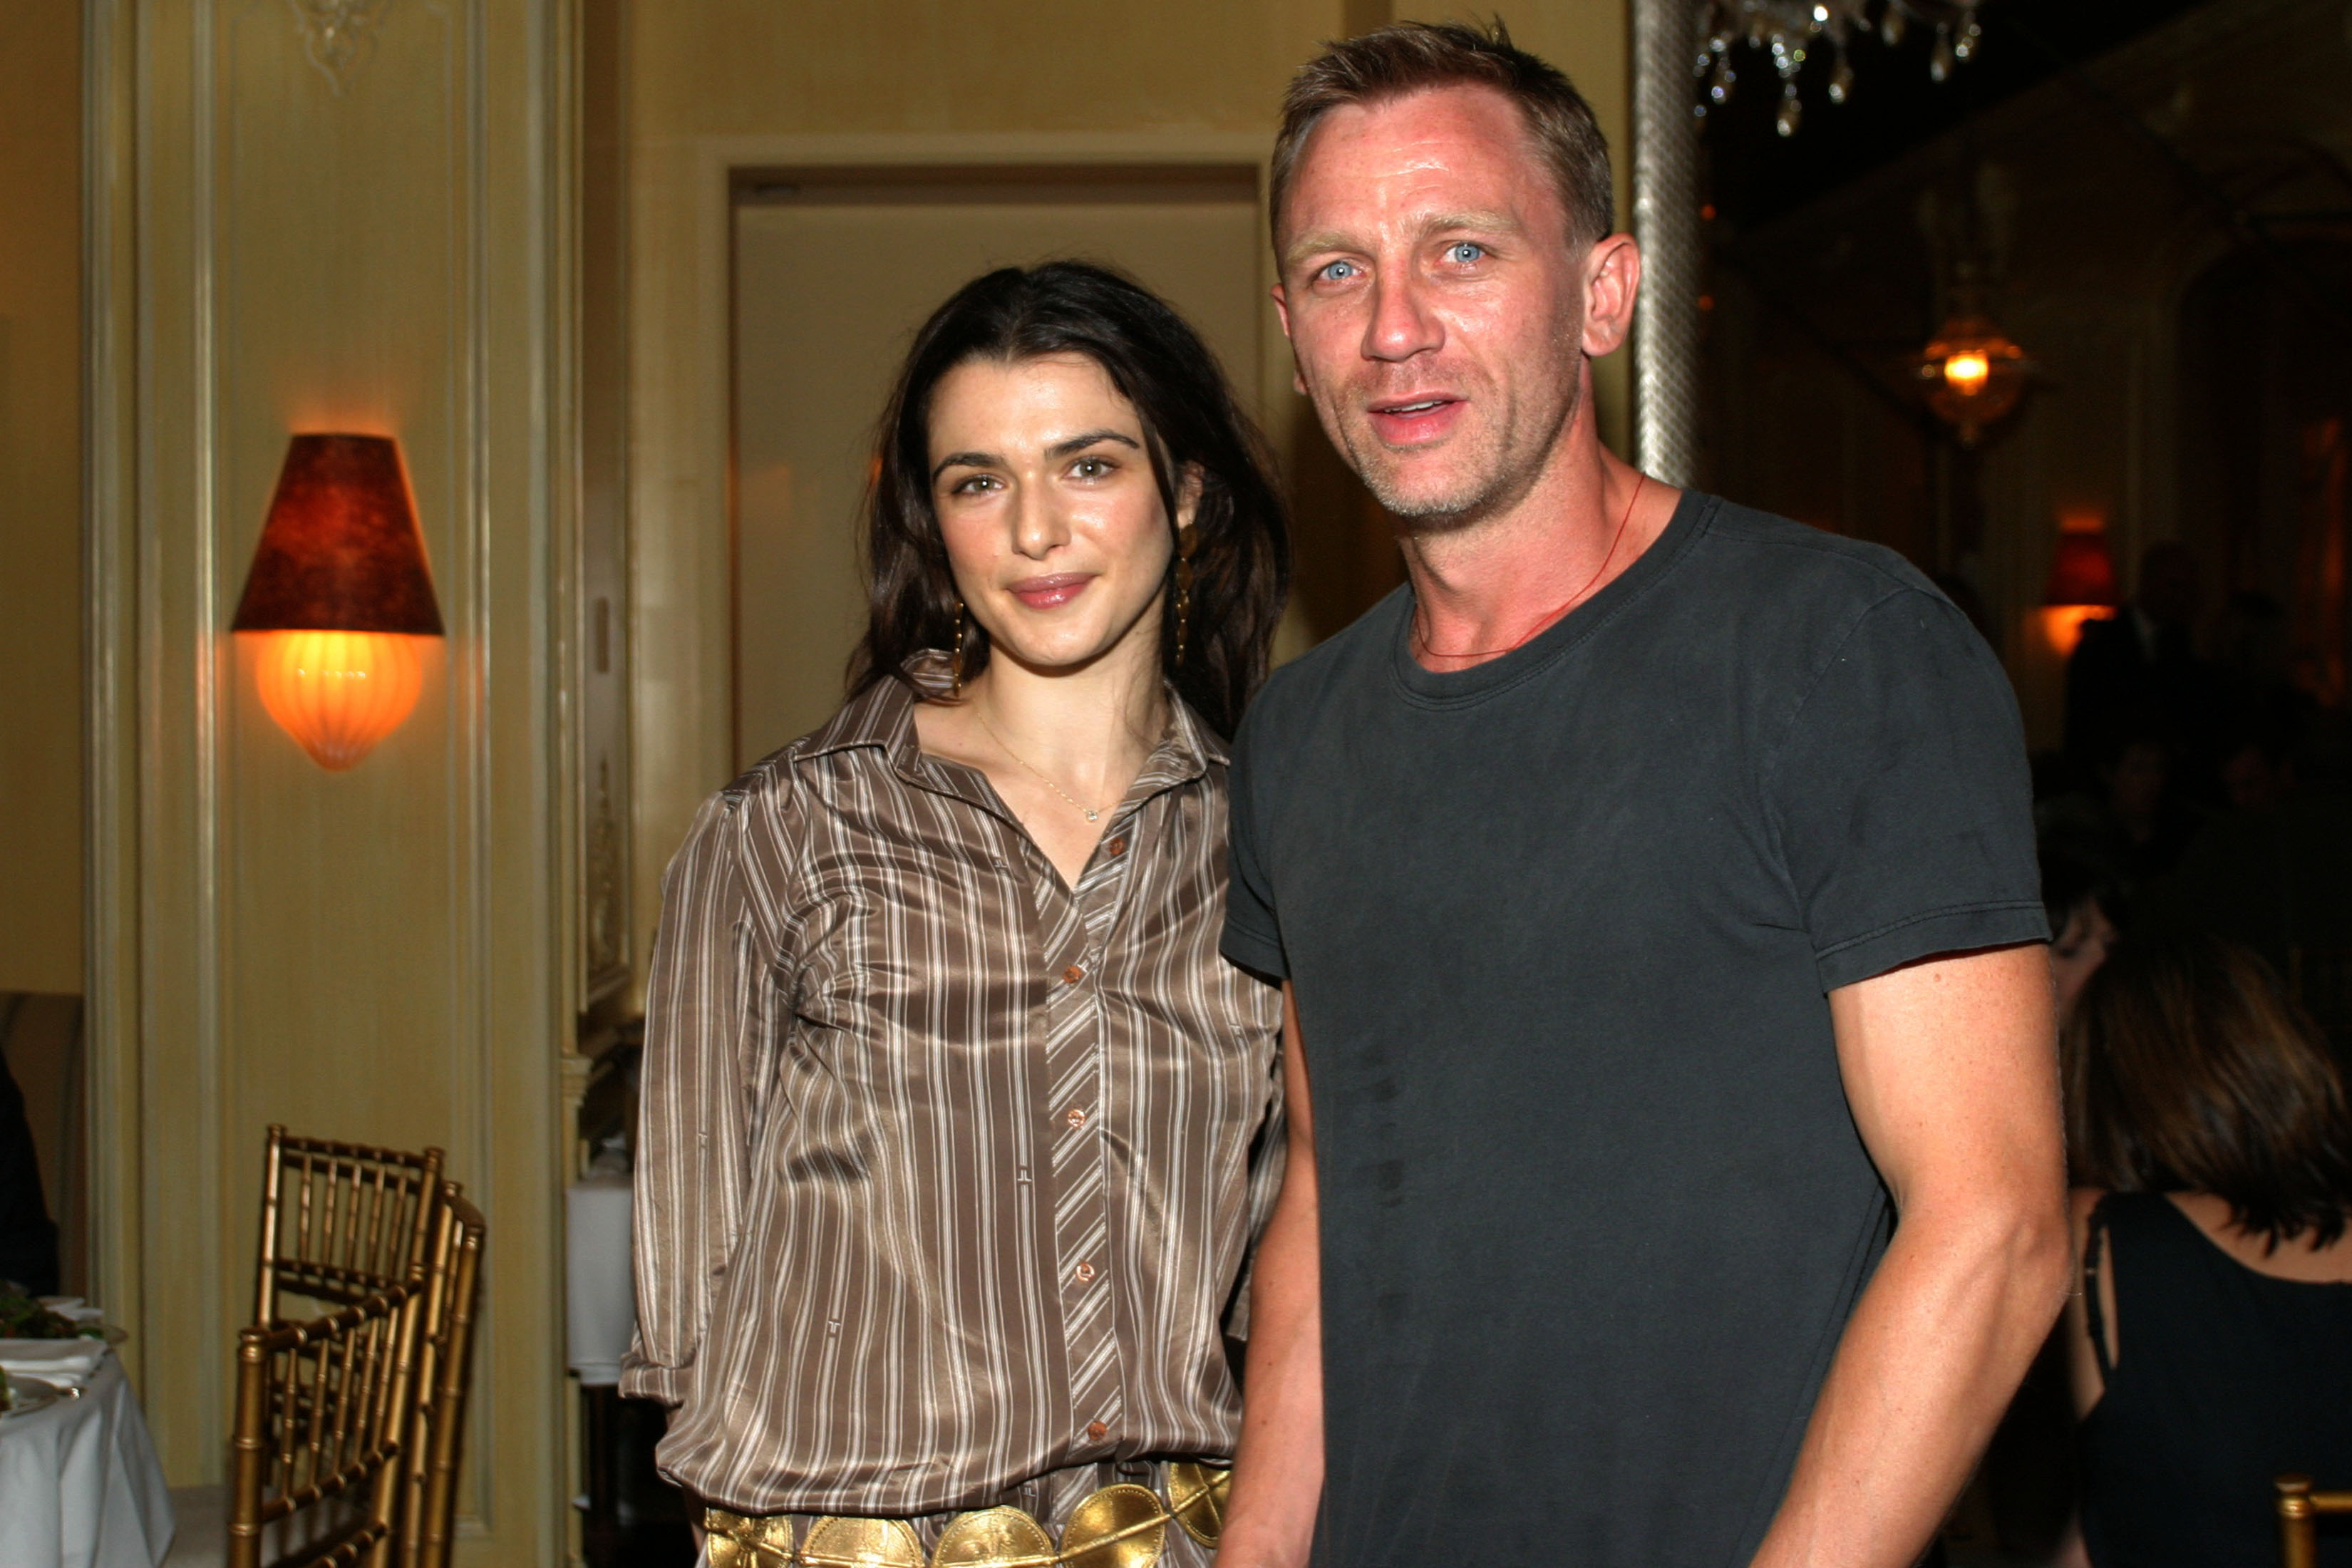 Rachel Weisz and Daniel Craig attend a private screening of 'Enduring Love' at the MGM screening room on September 13, 2004, in New York City. (Getty)